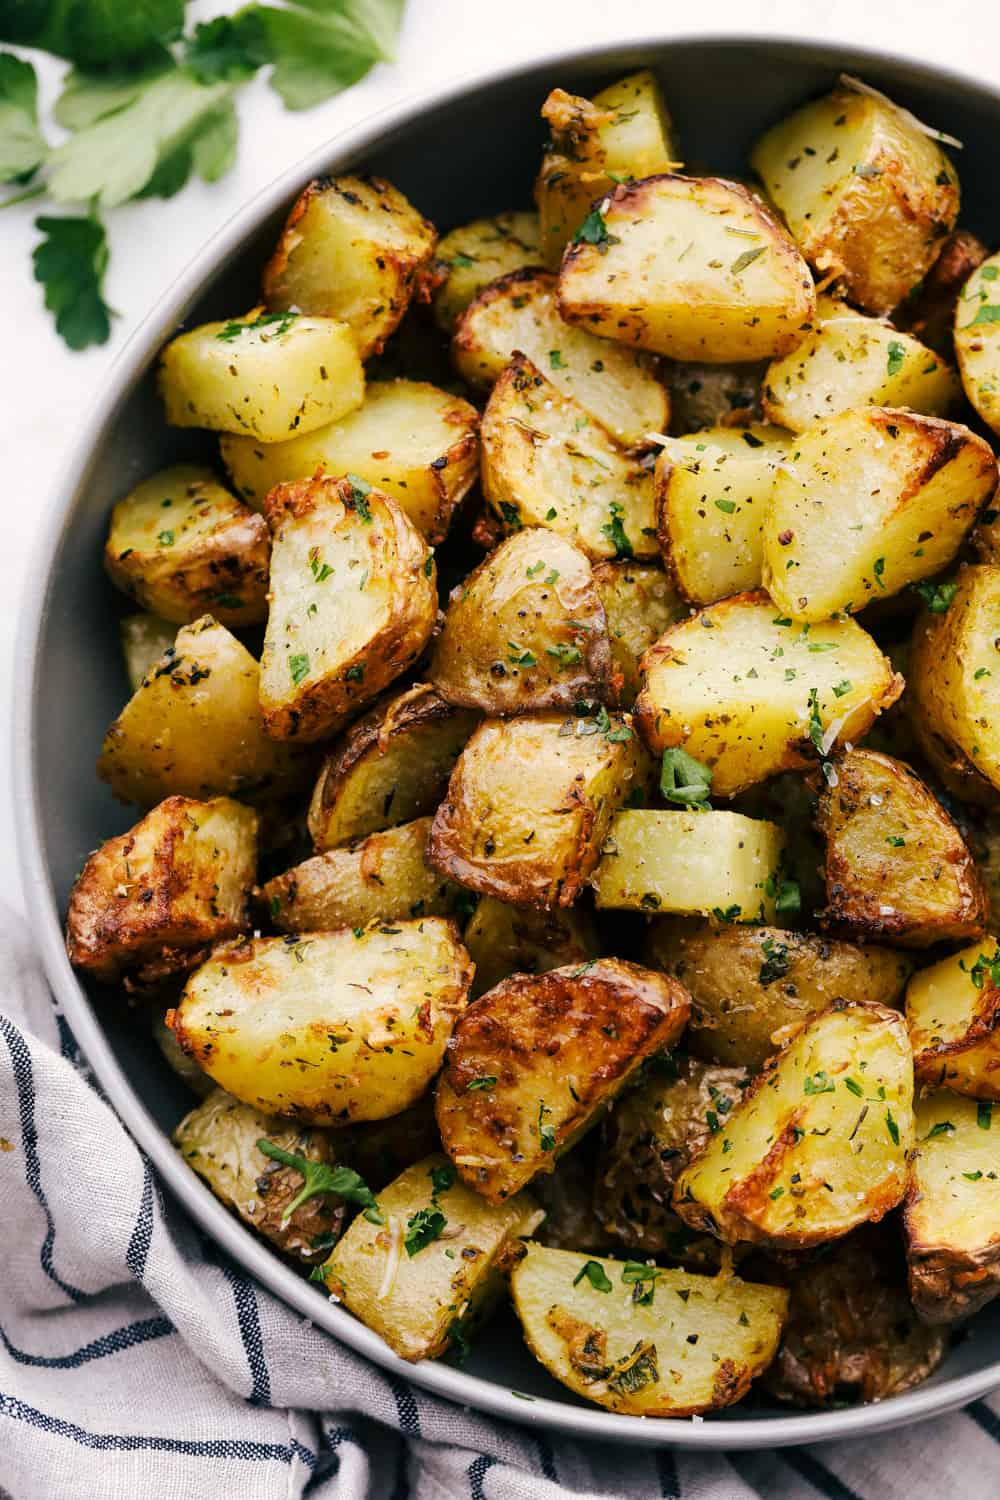 Herb crusted and perfectly seasoned air fryer roasted potatoes.